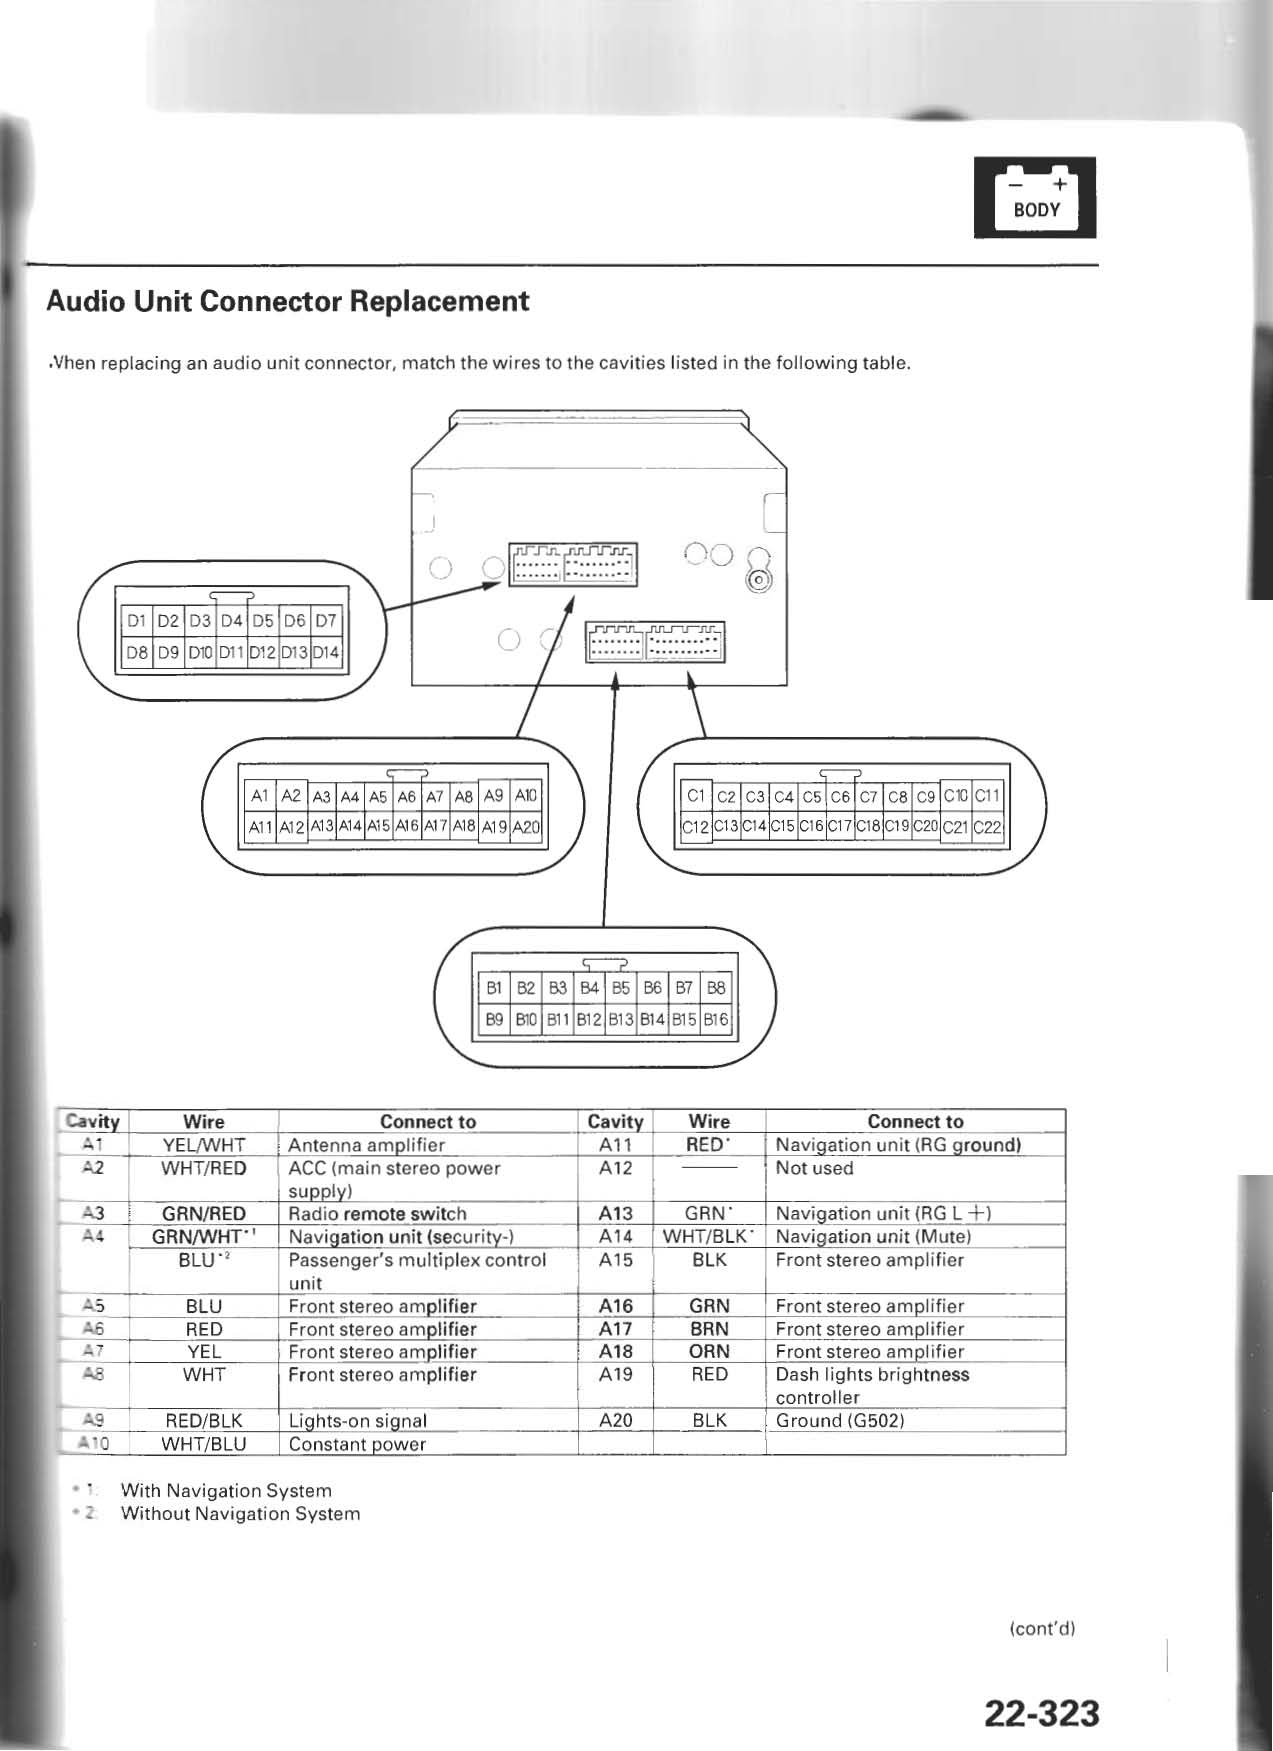 2001 Acura Mdx Wiring Diagram Hp Photosmart Printer Wiring-Diagram Rinker  270 2002 2001 Acura Wiring Diagram